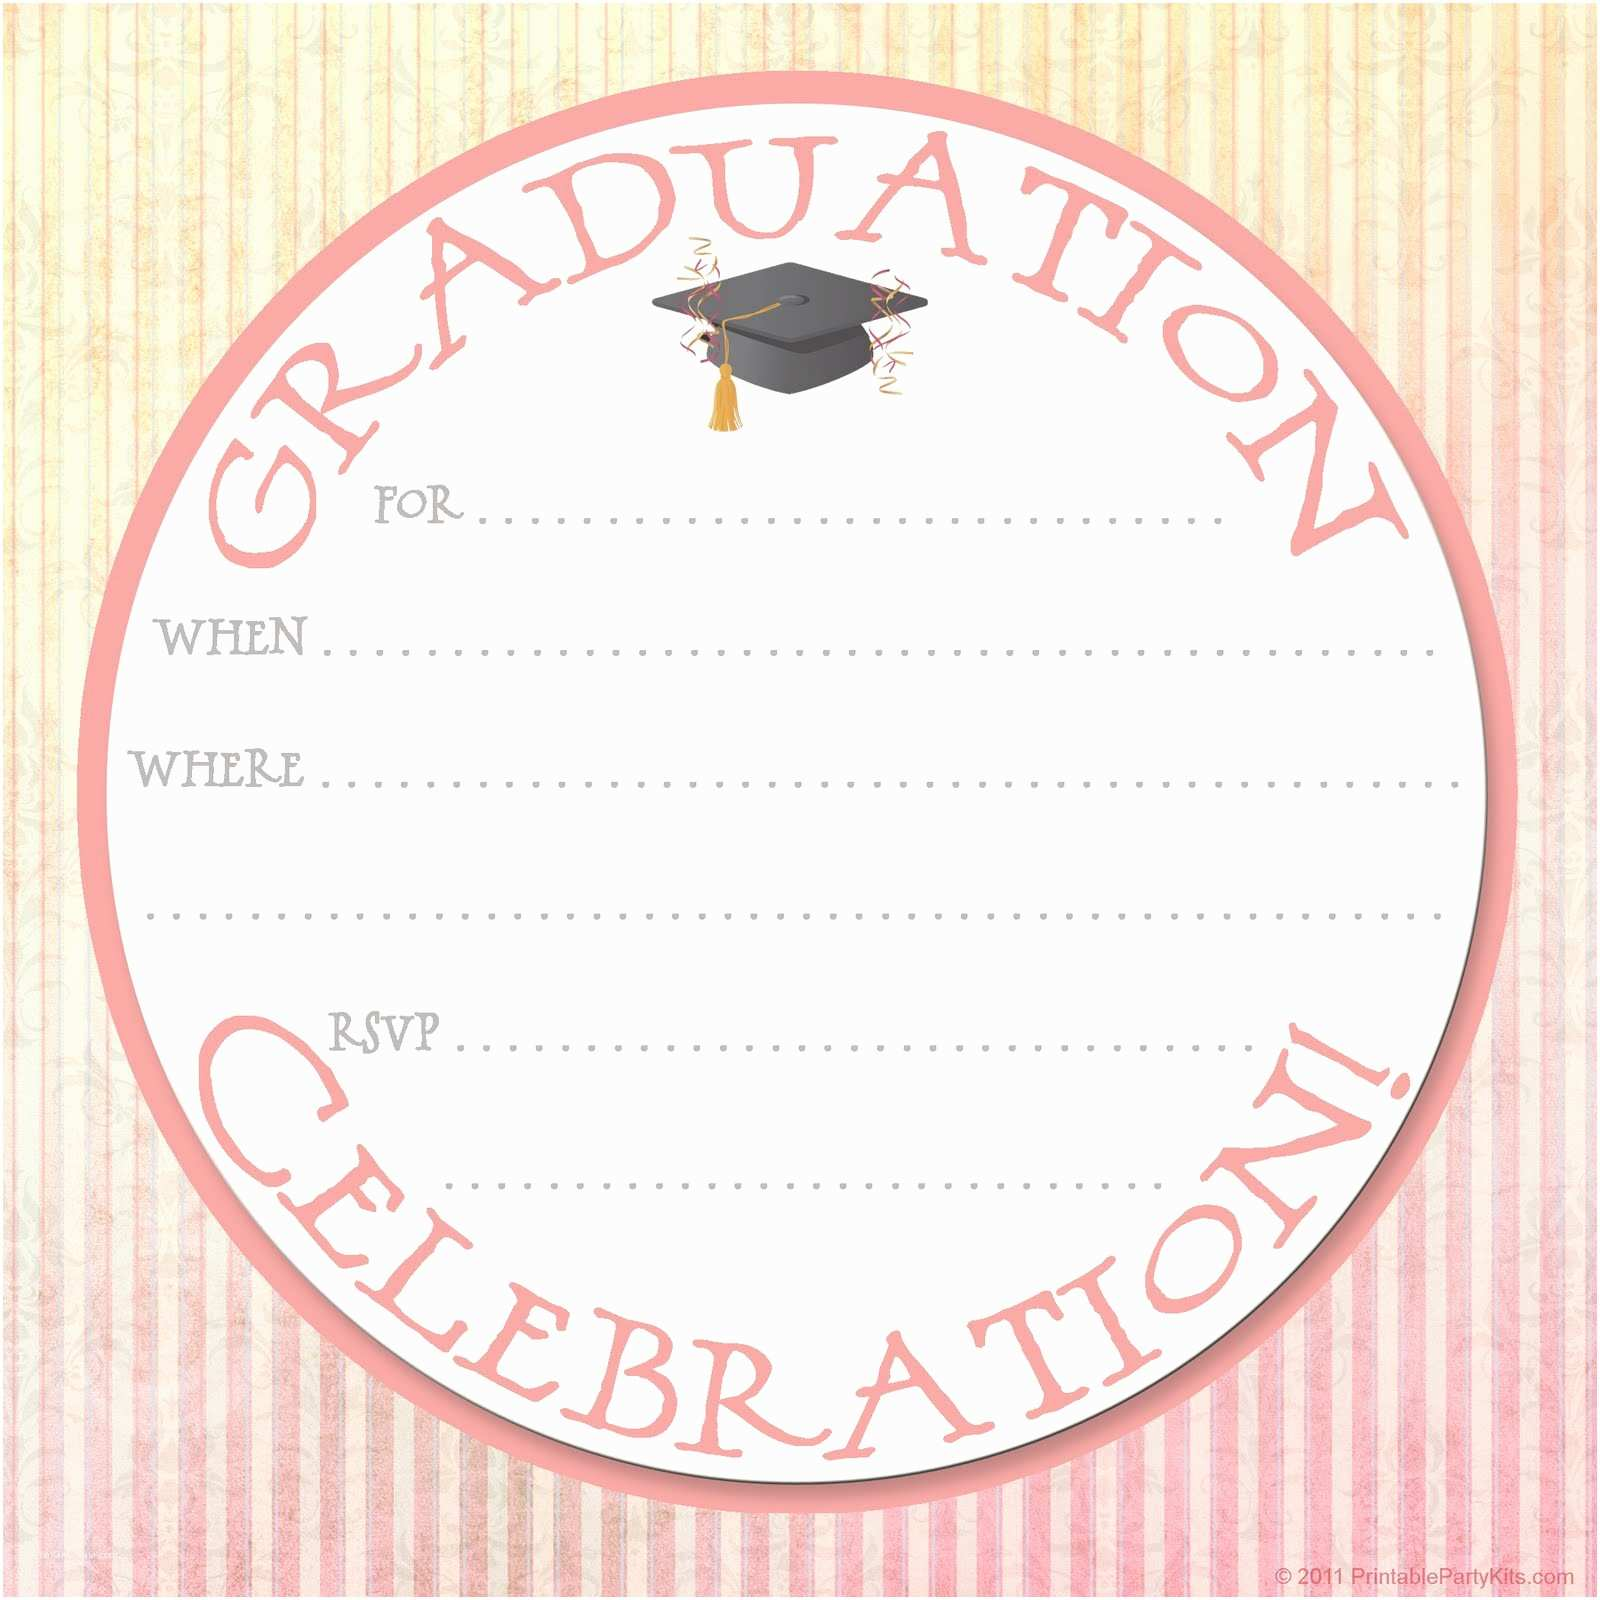 Graduation Party Invitations Templates Free Free Printable Party Invitations Graduation Party